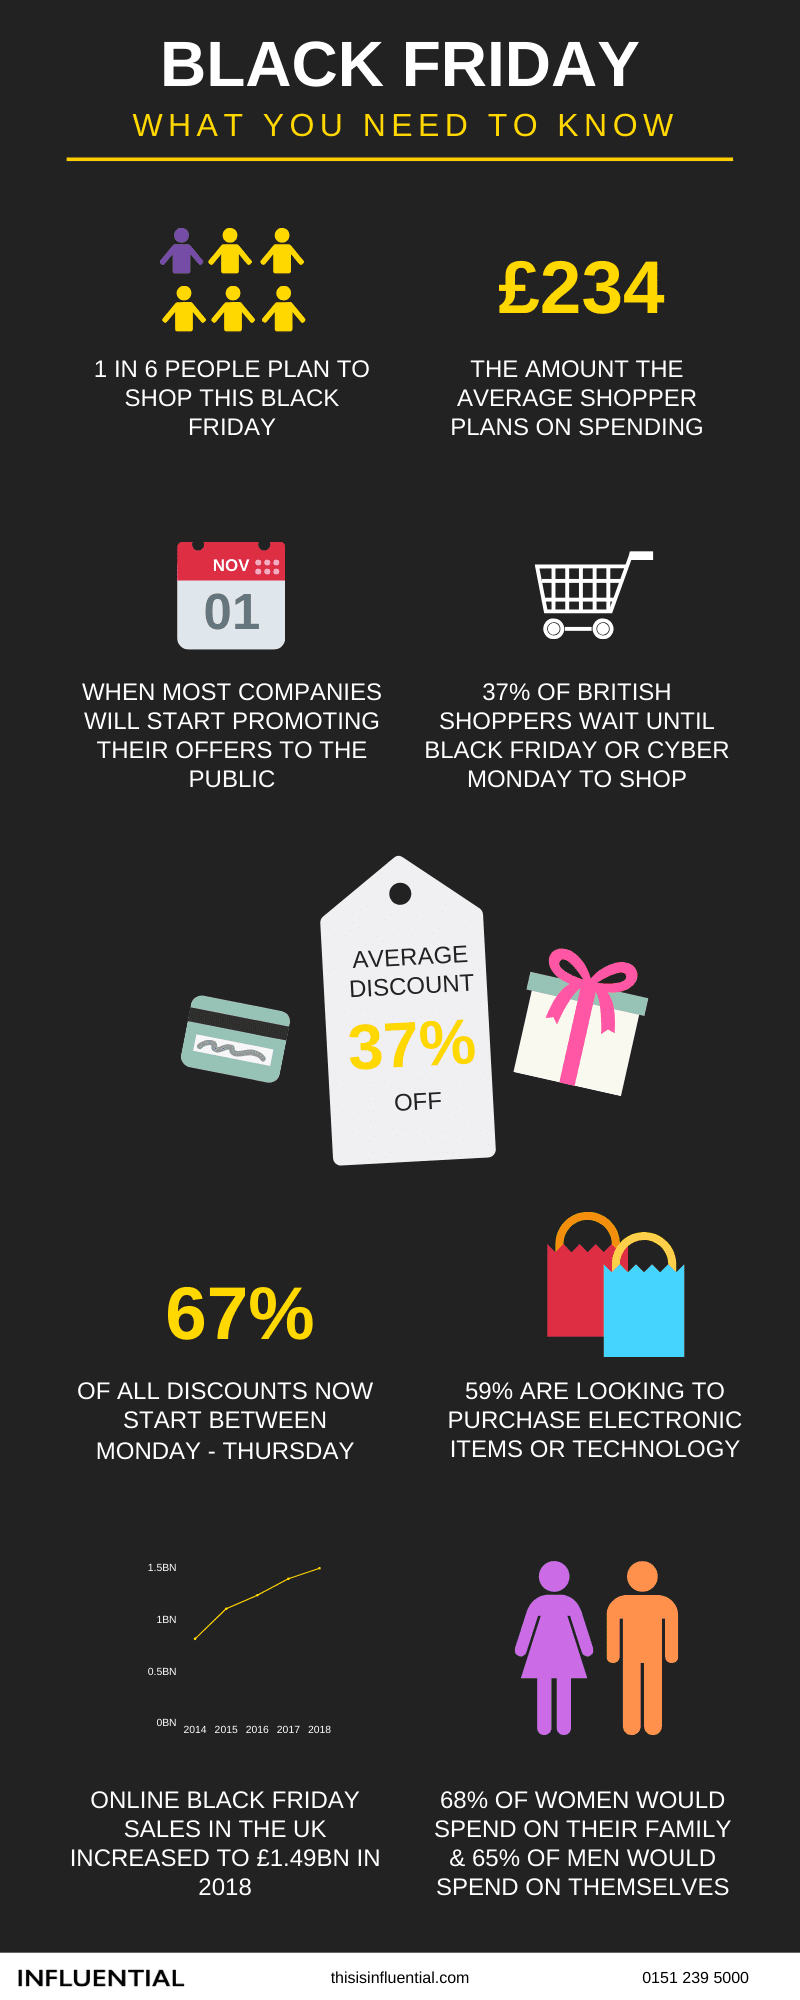 What you need to know about black friday